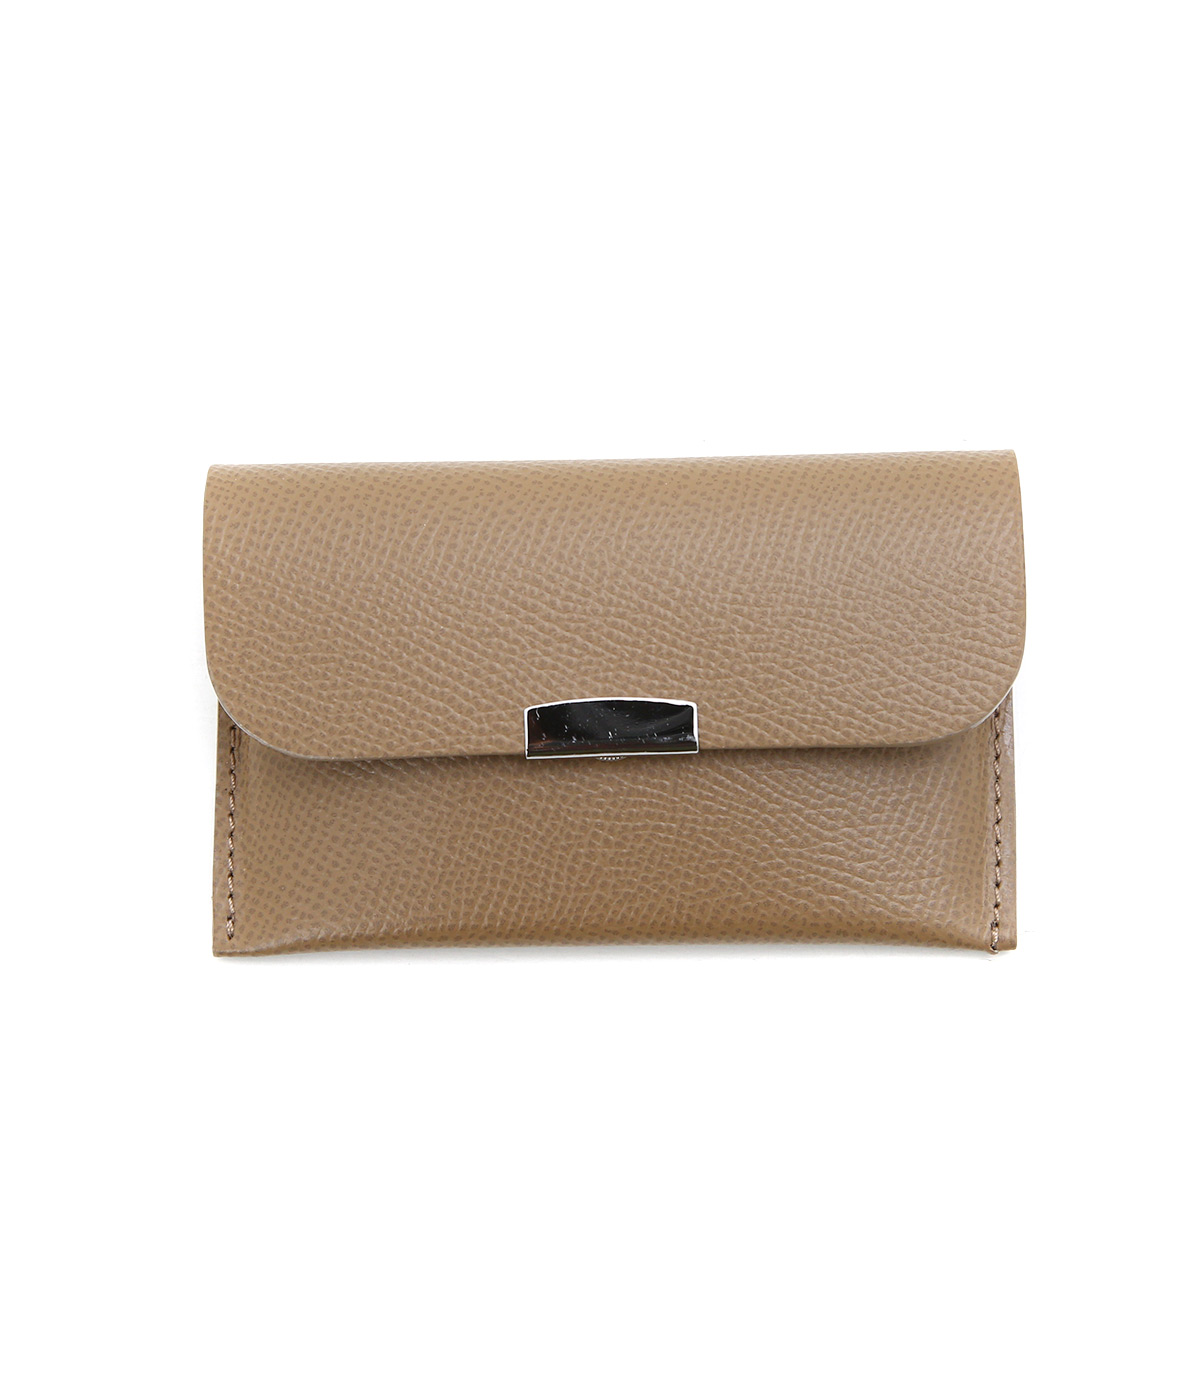 CARD CASE - Calf leather -グレイ-